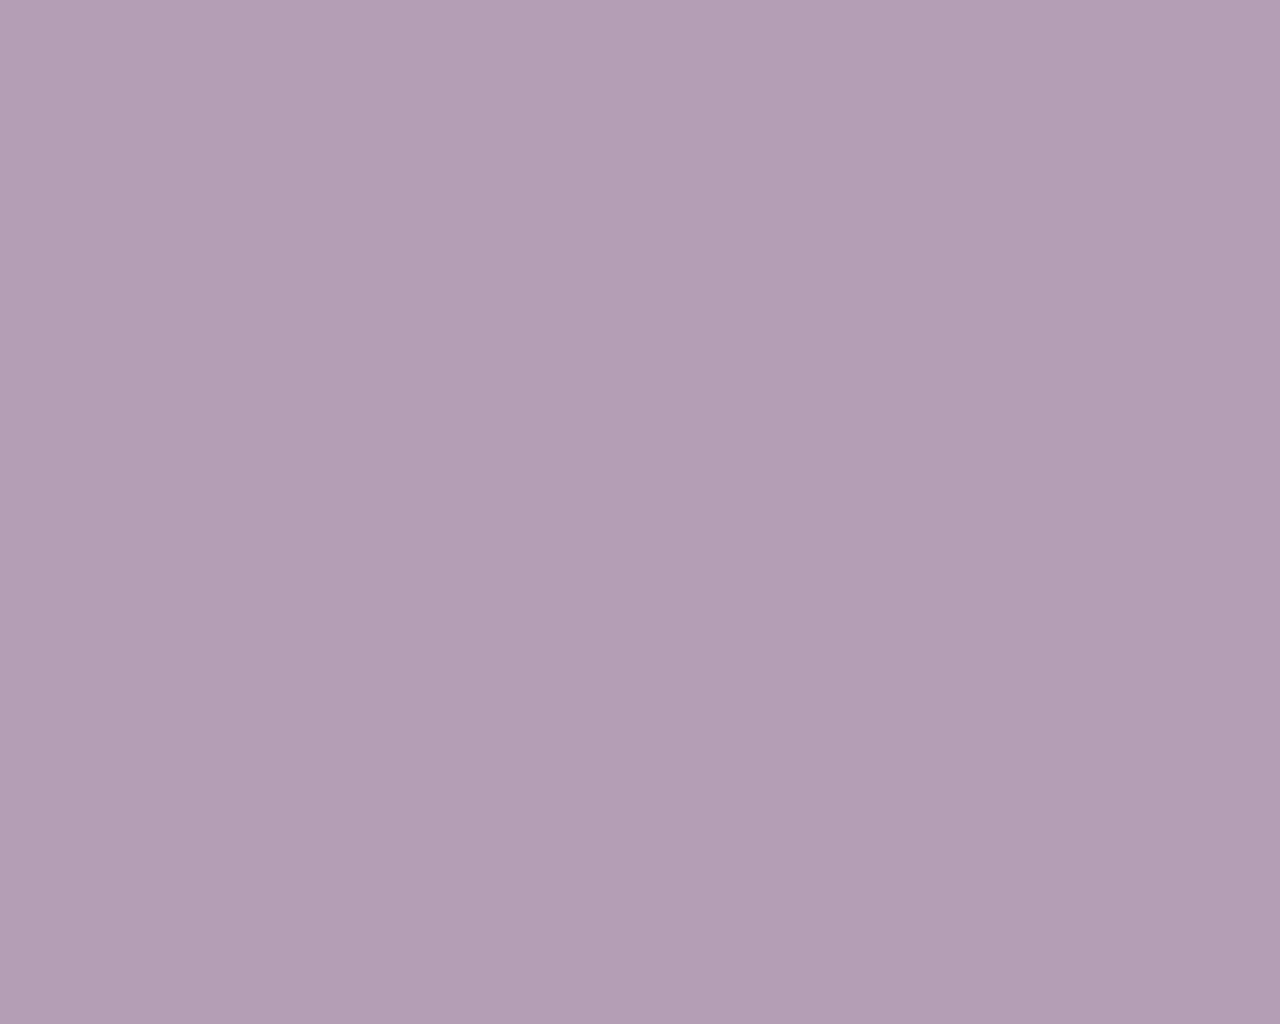 1280x1024 Pastel Purple Solid Color Background